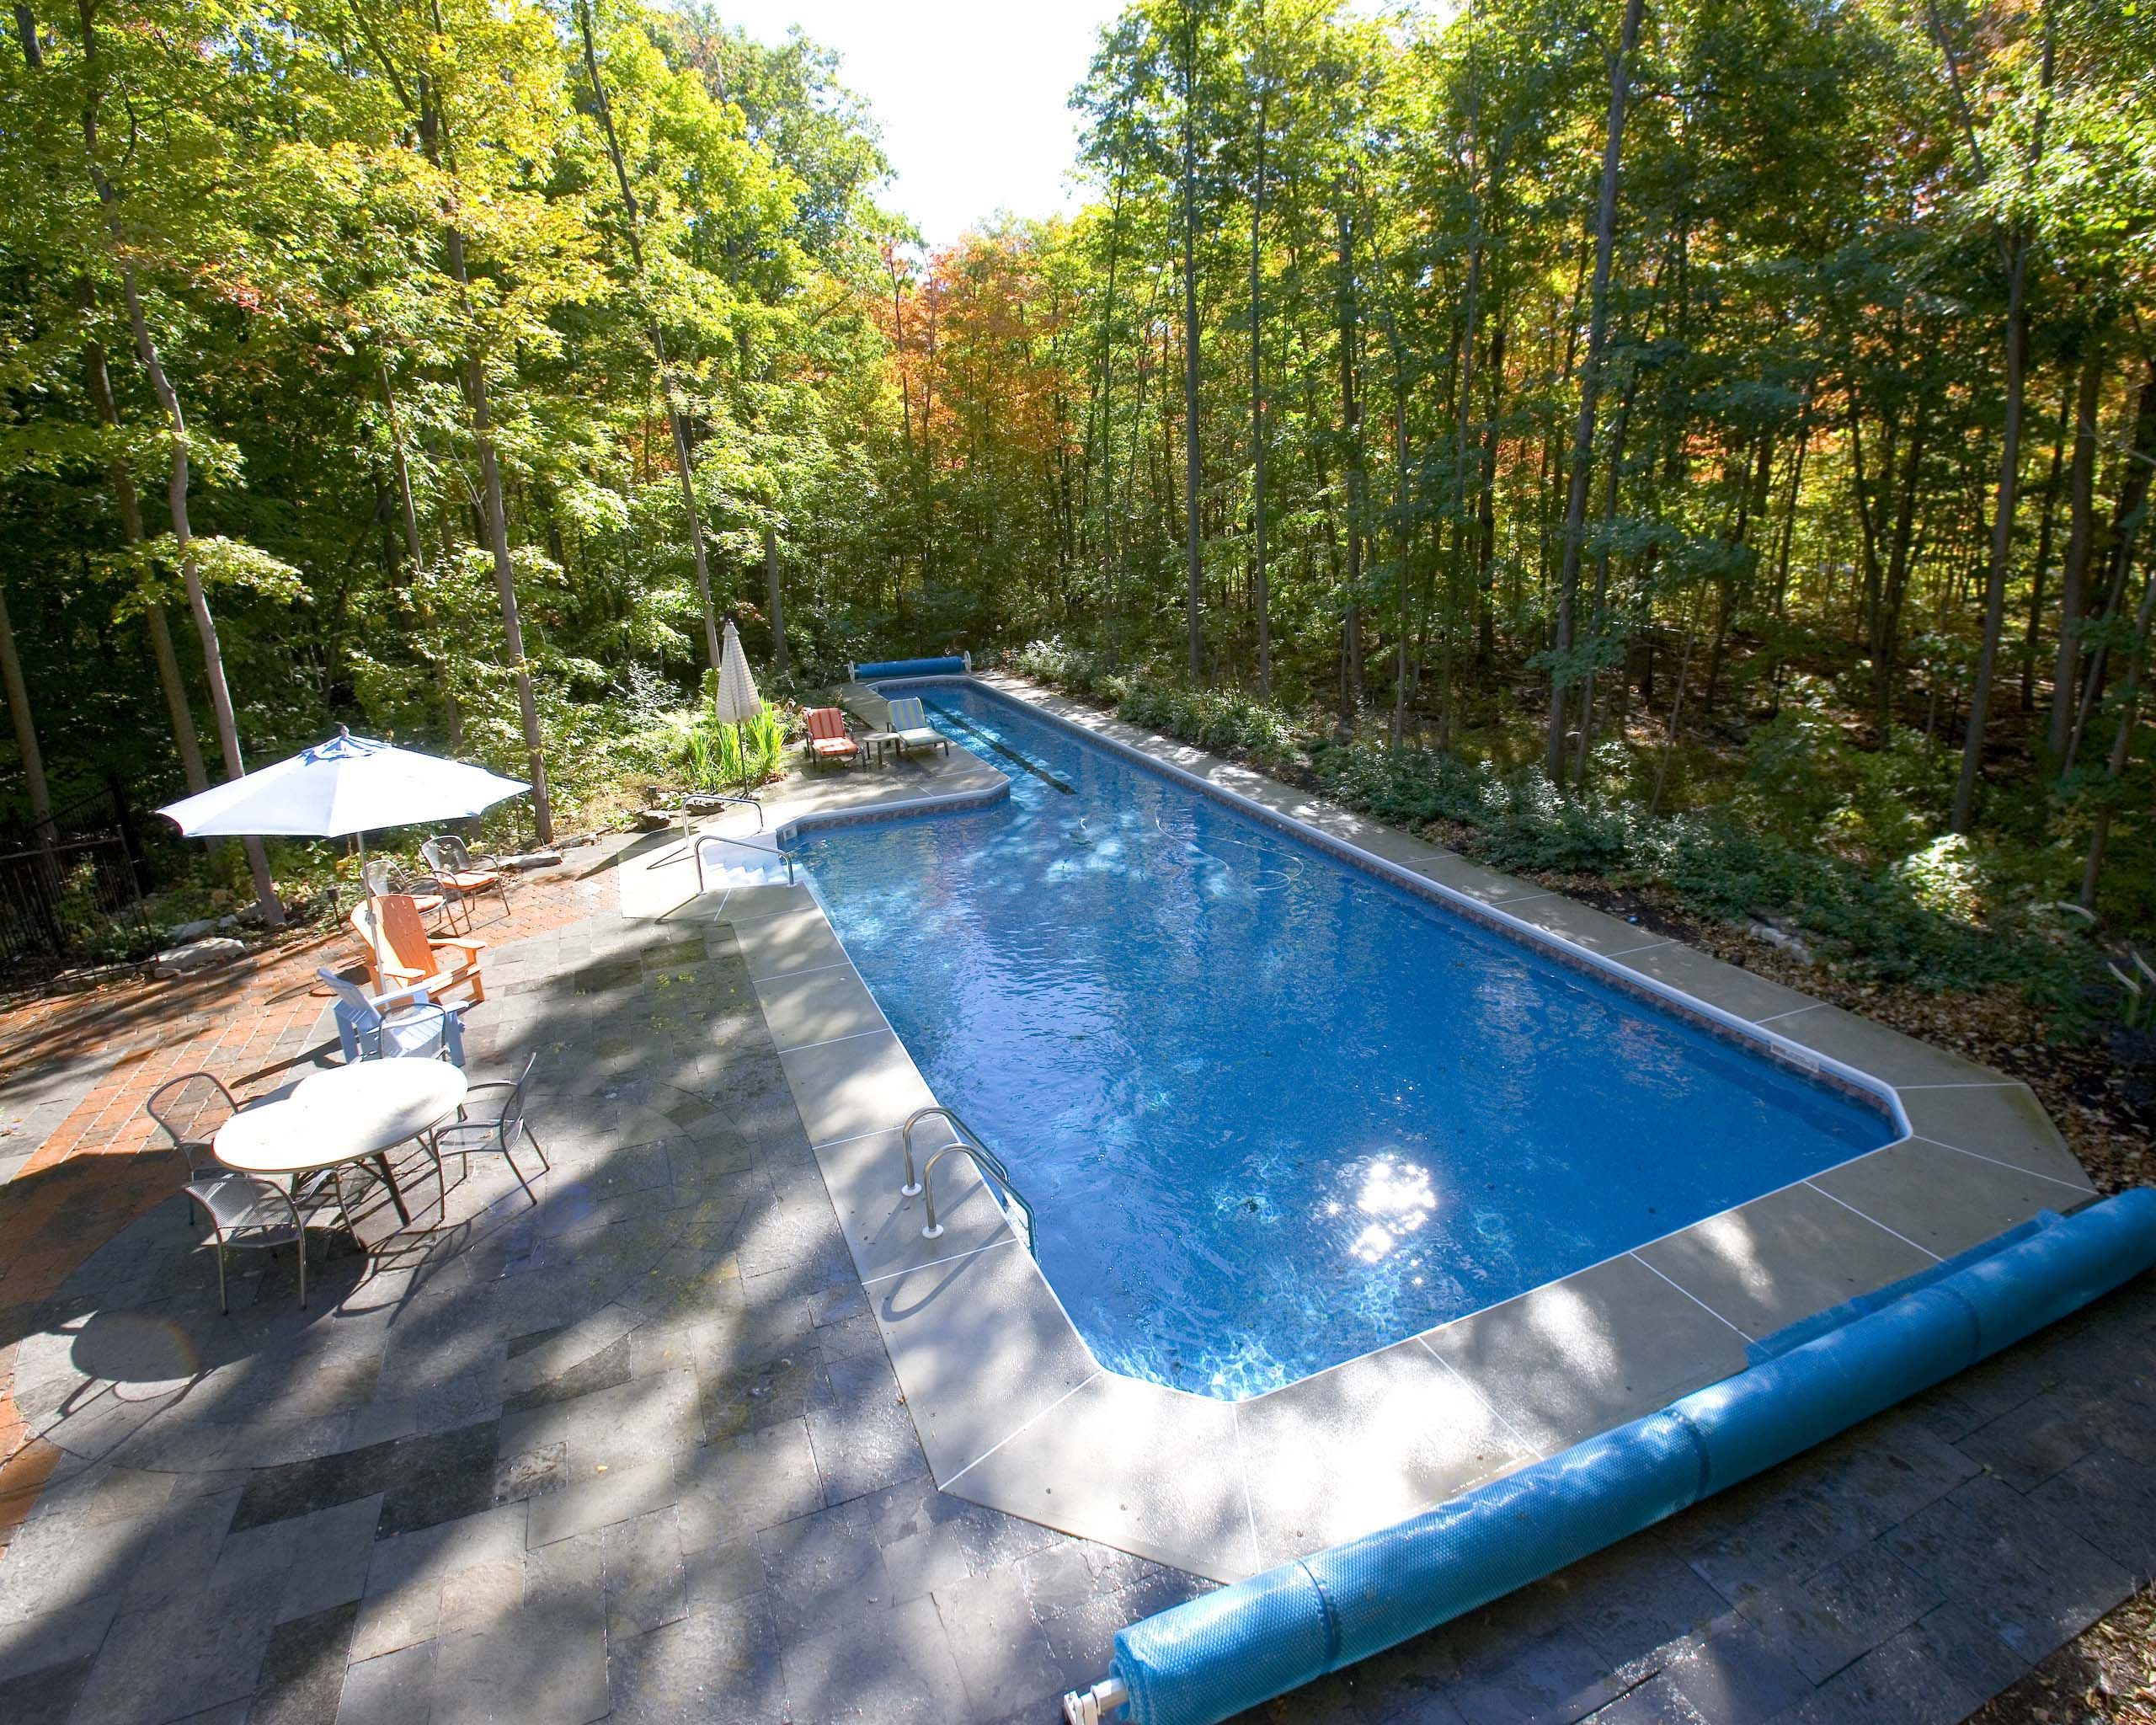 Pool With Lap Lanes And For Play Area Google Search Inground Pools Pool Swimming Pool House